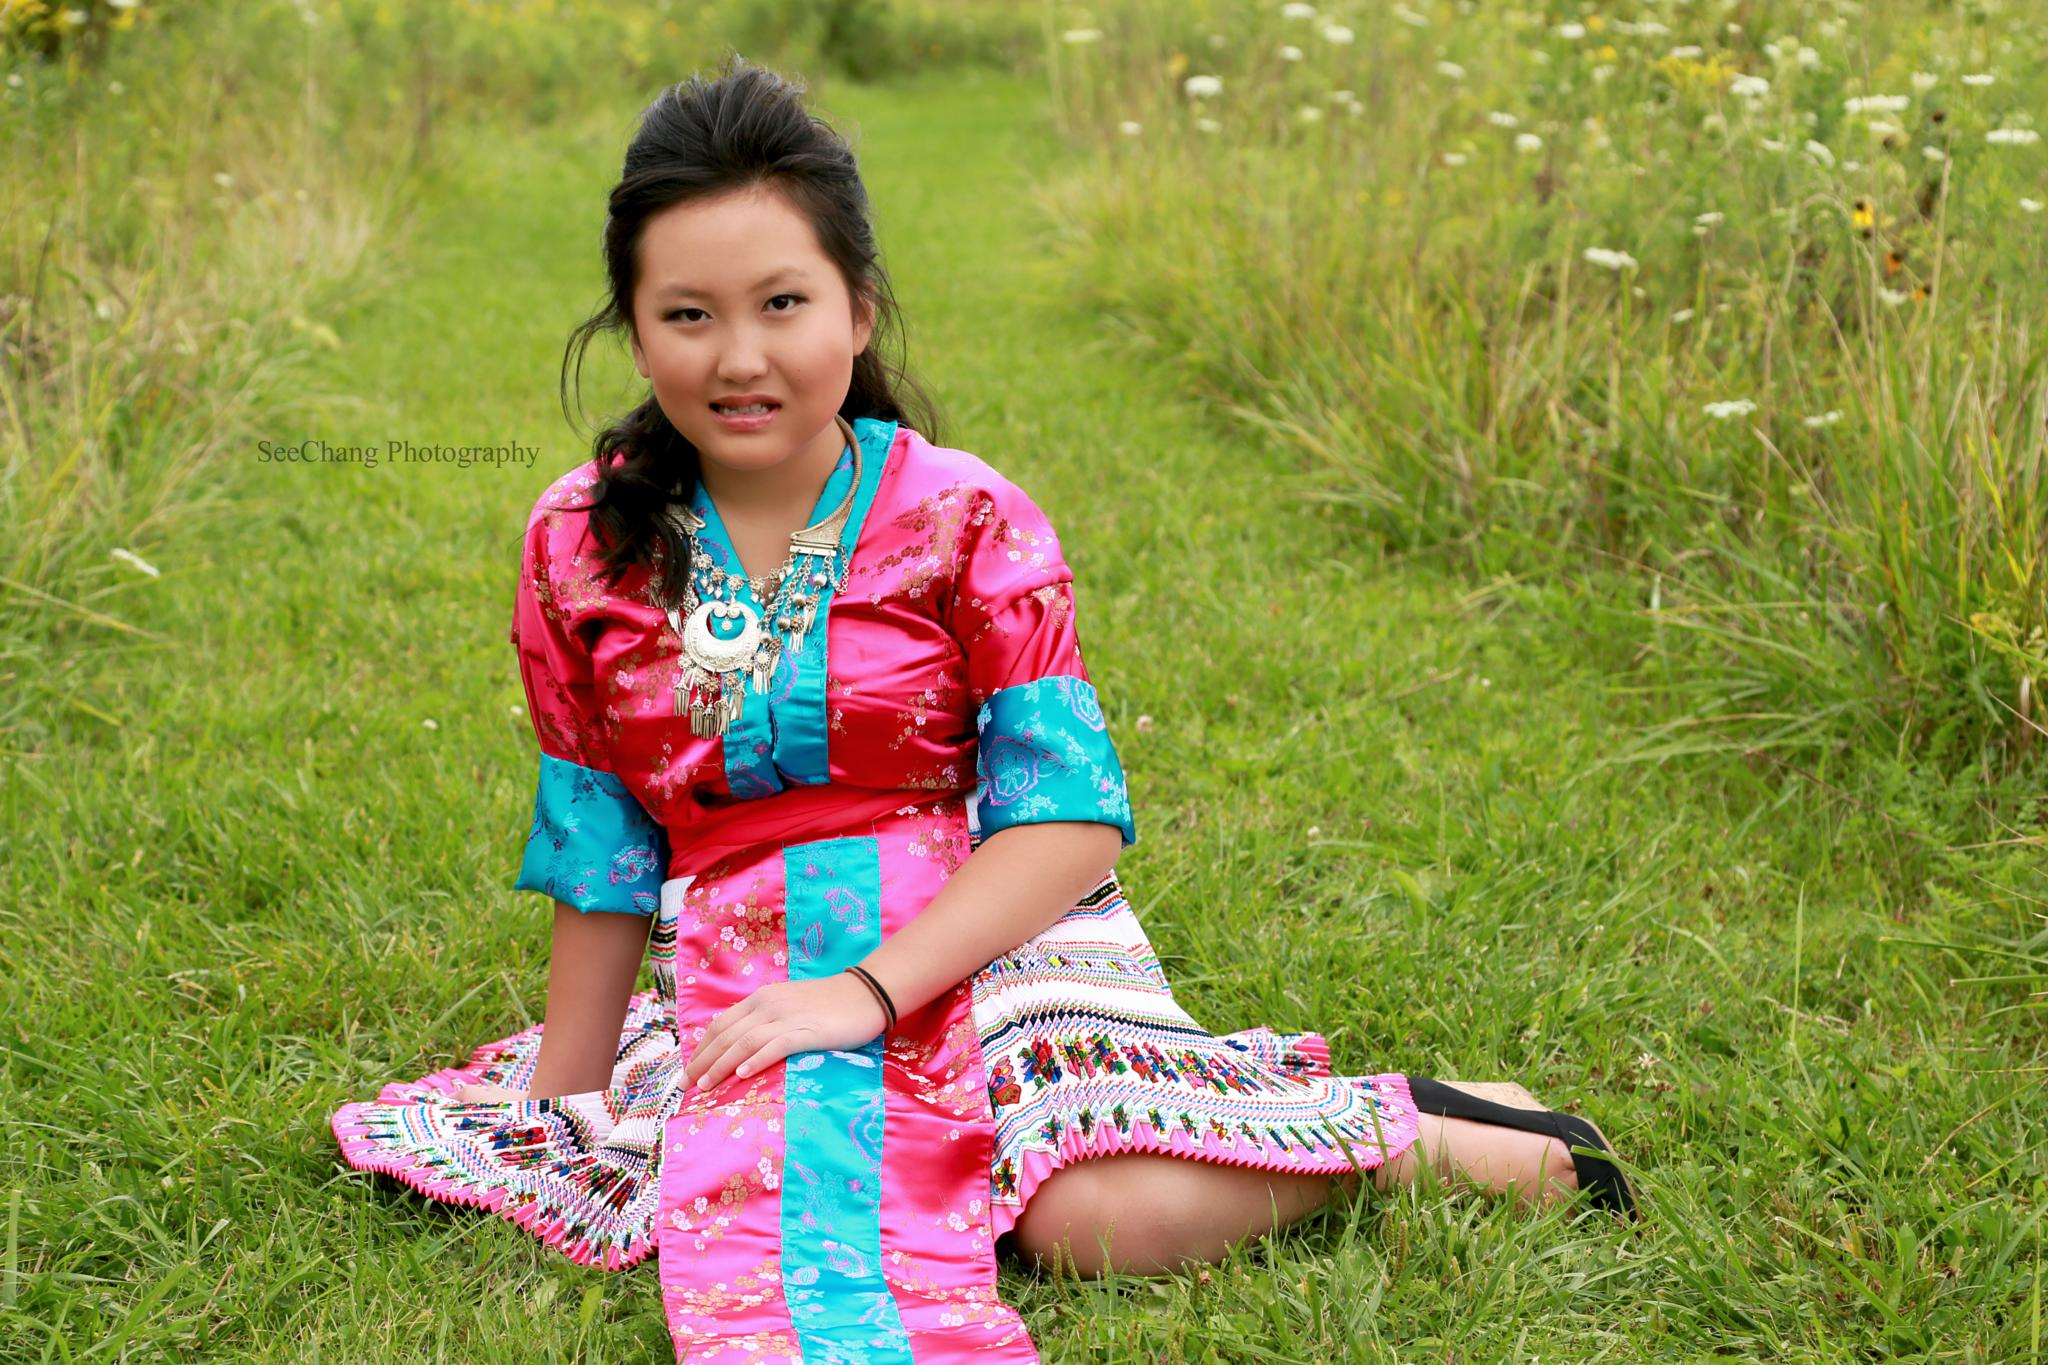 Hmong Beauty by SeeChang